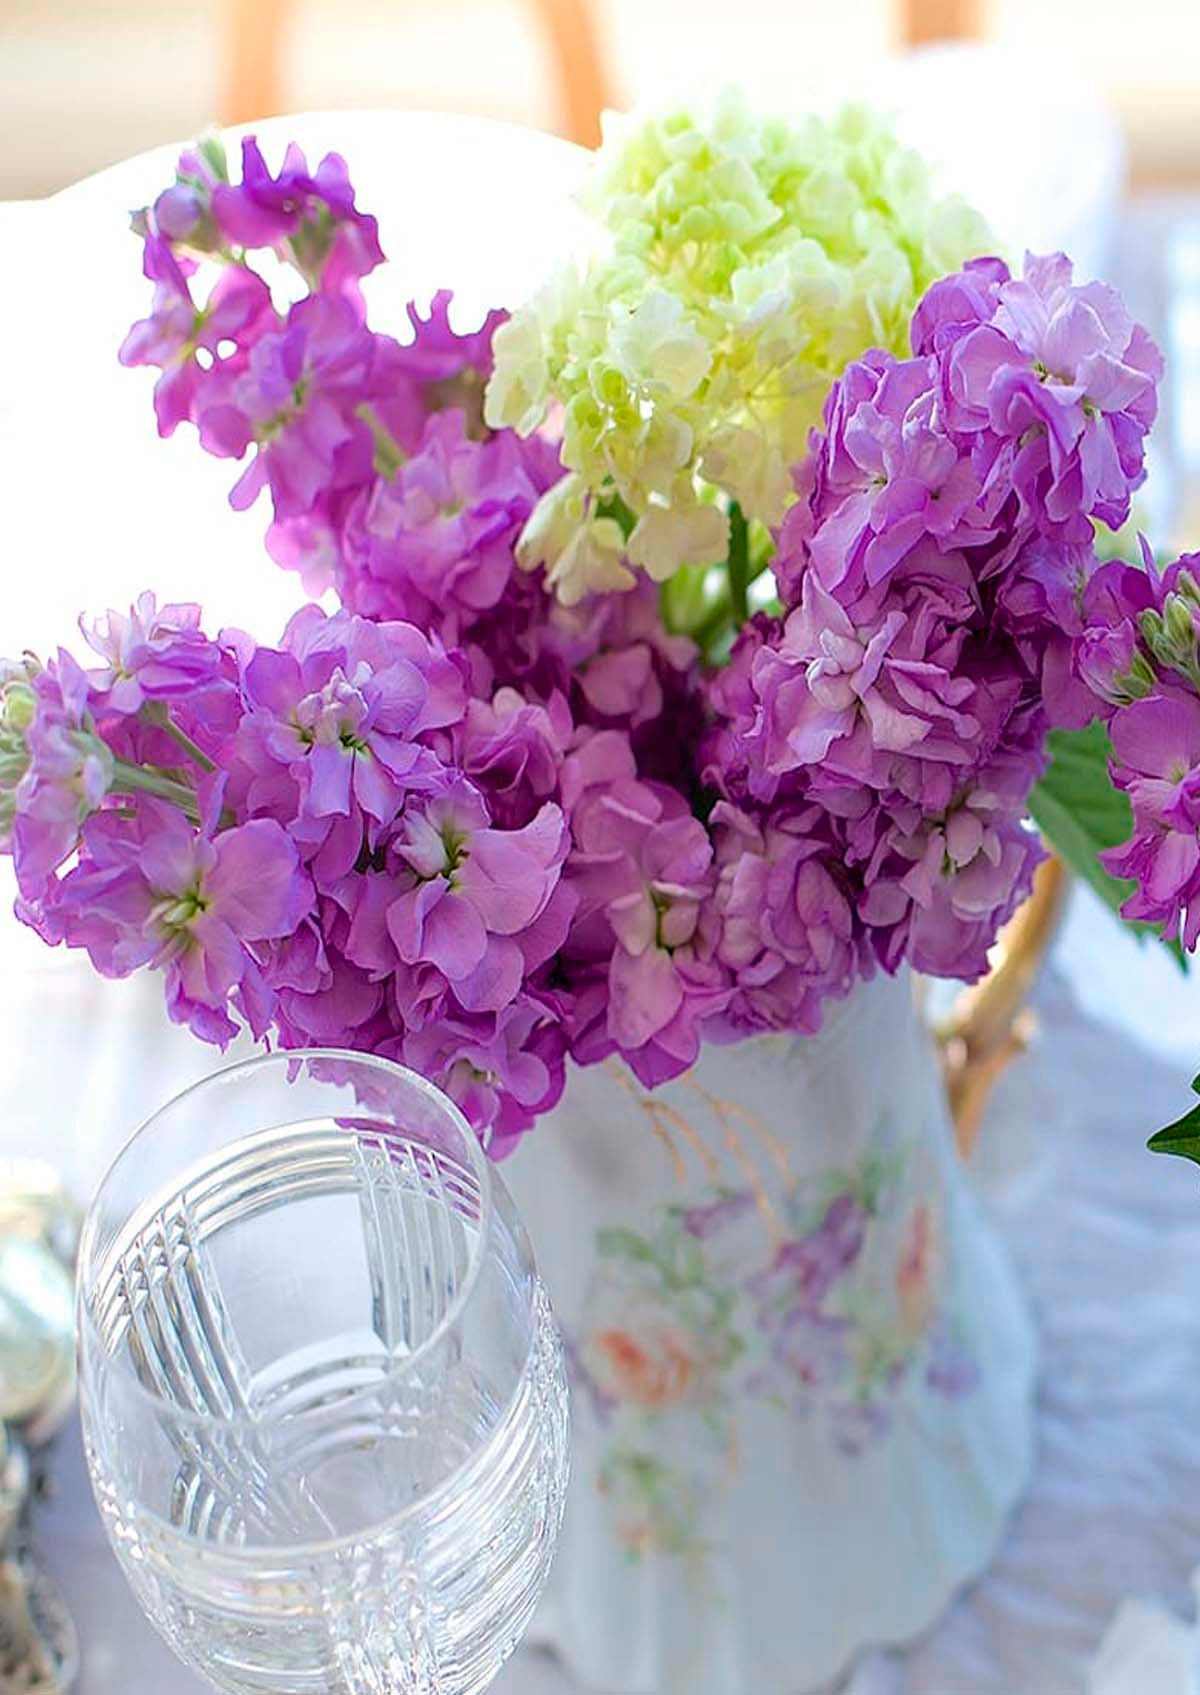 Flowers chosen to match the colors in your favorite china pieces set in a lovely vintage or antique pitcher adds a true summertime feel.